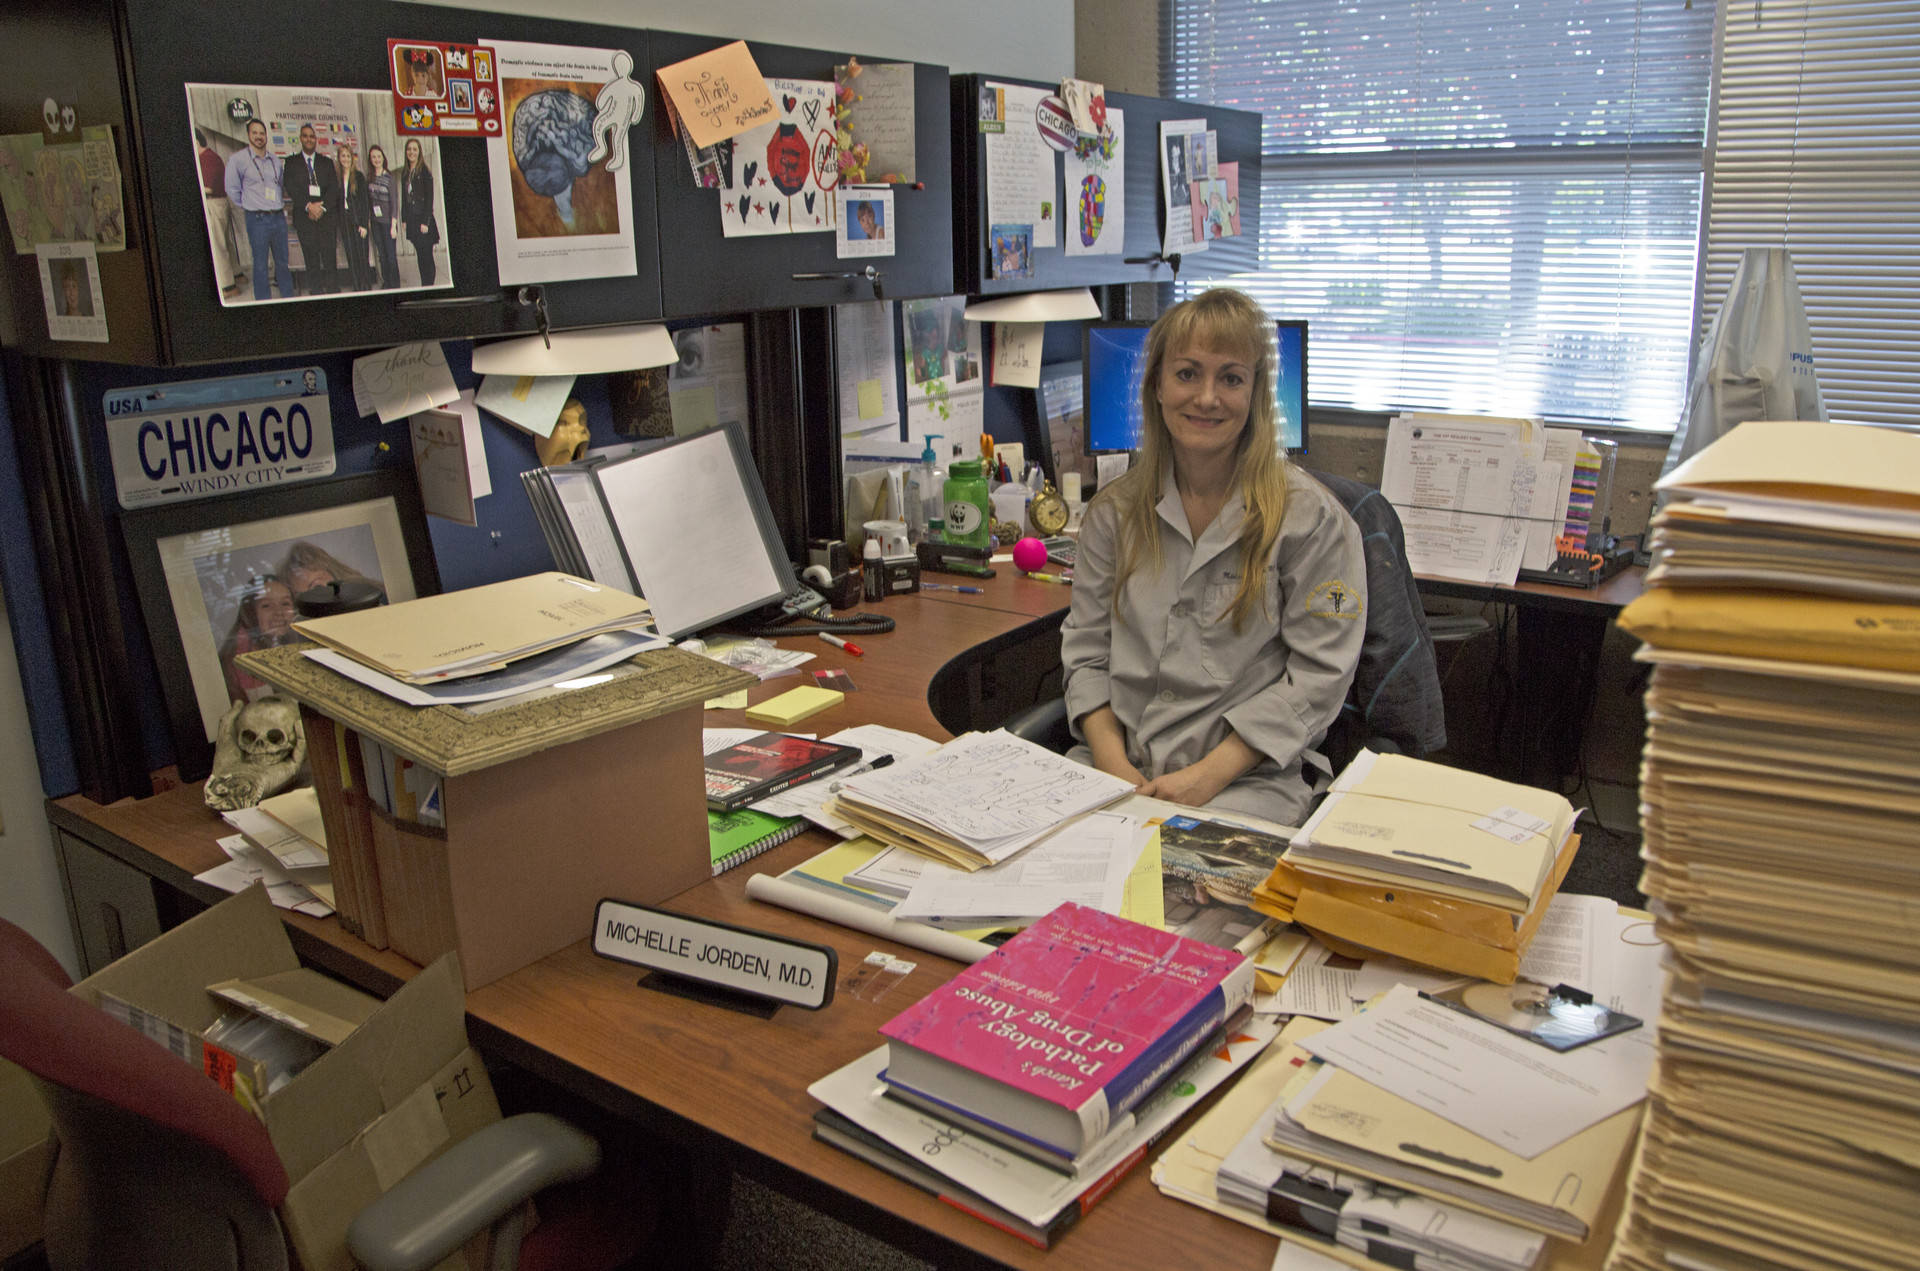 Reports are stacked high on the desk of Assistant Medical Examiner Michelle Jorden. The medical examiner¹s office in Santa Clara County handles more than 4,000 cases a year. Lisa Pickoff-White/KQED